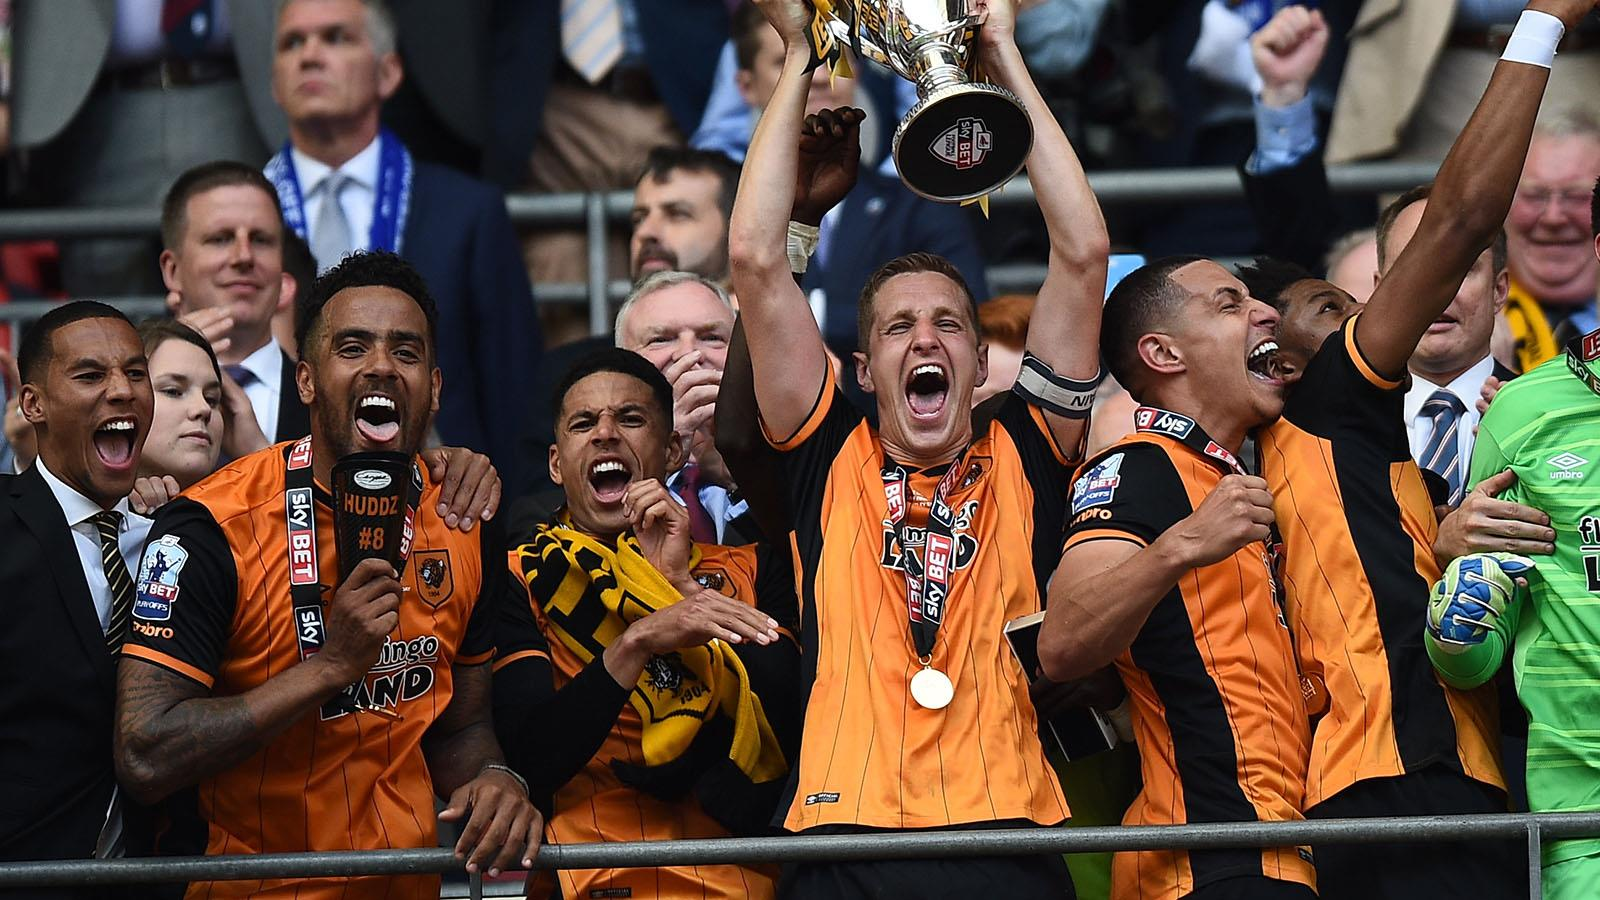 Michael Dawson Lifting the Trophy for Hull City